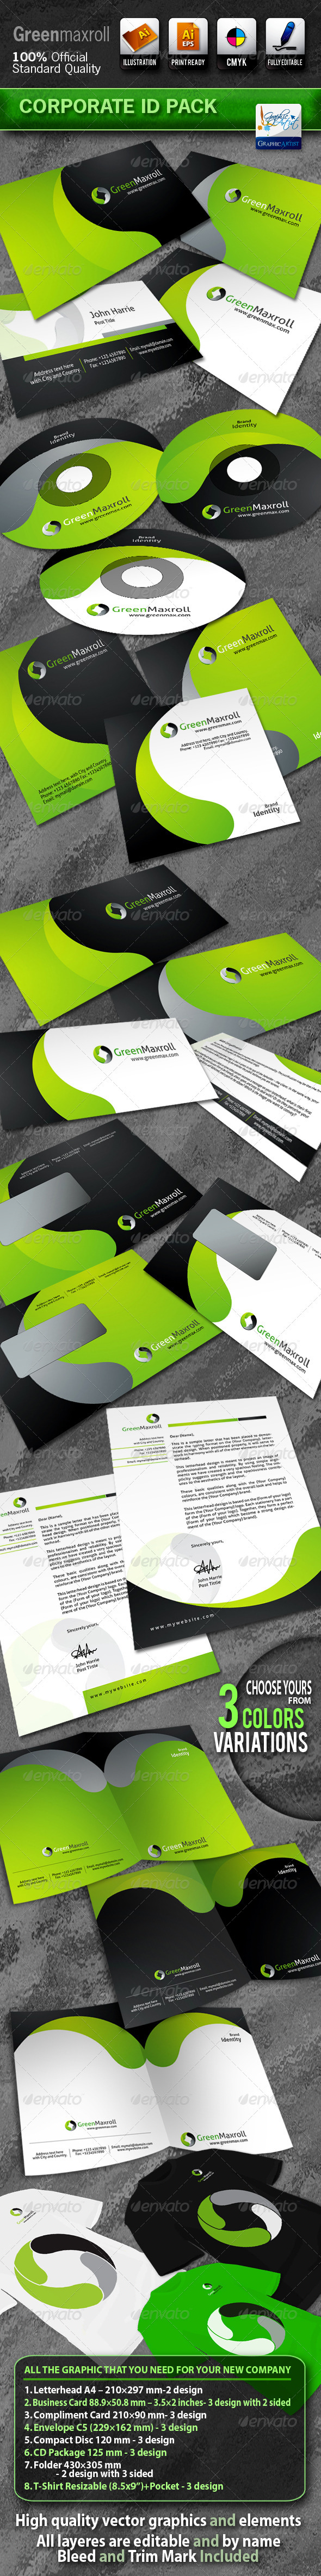 GraphicRiver GreenMaxroll Business Corporate ID Pack With Logo 700023